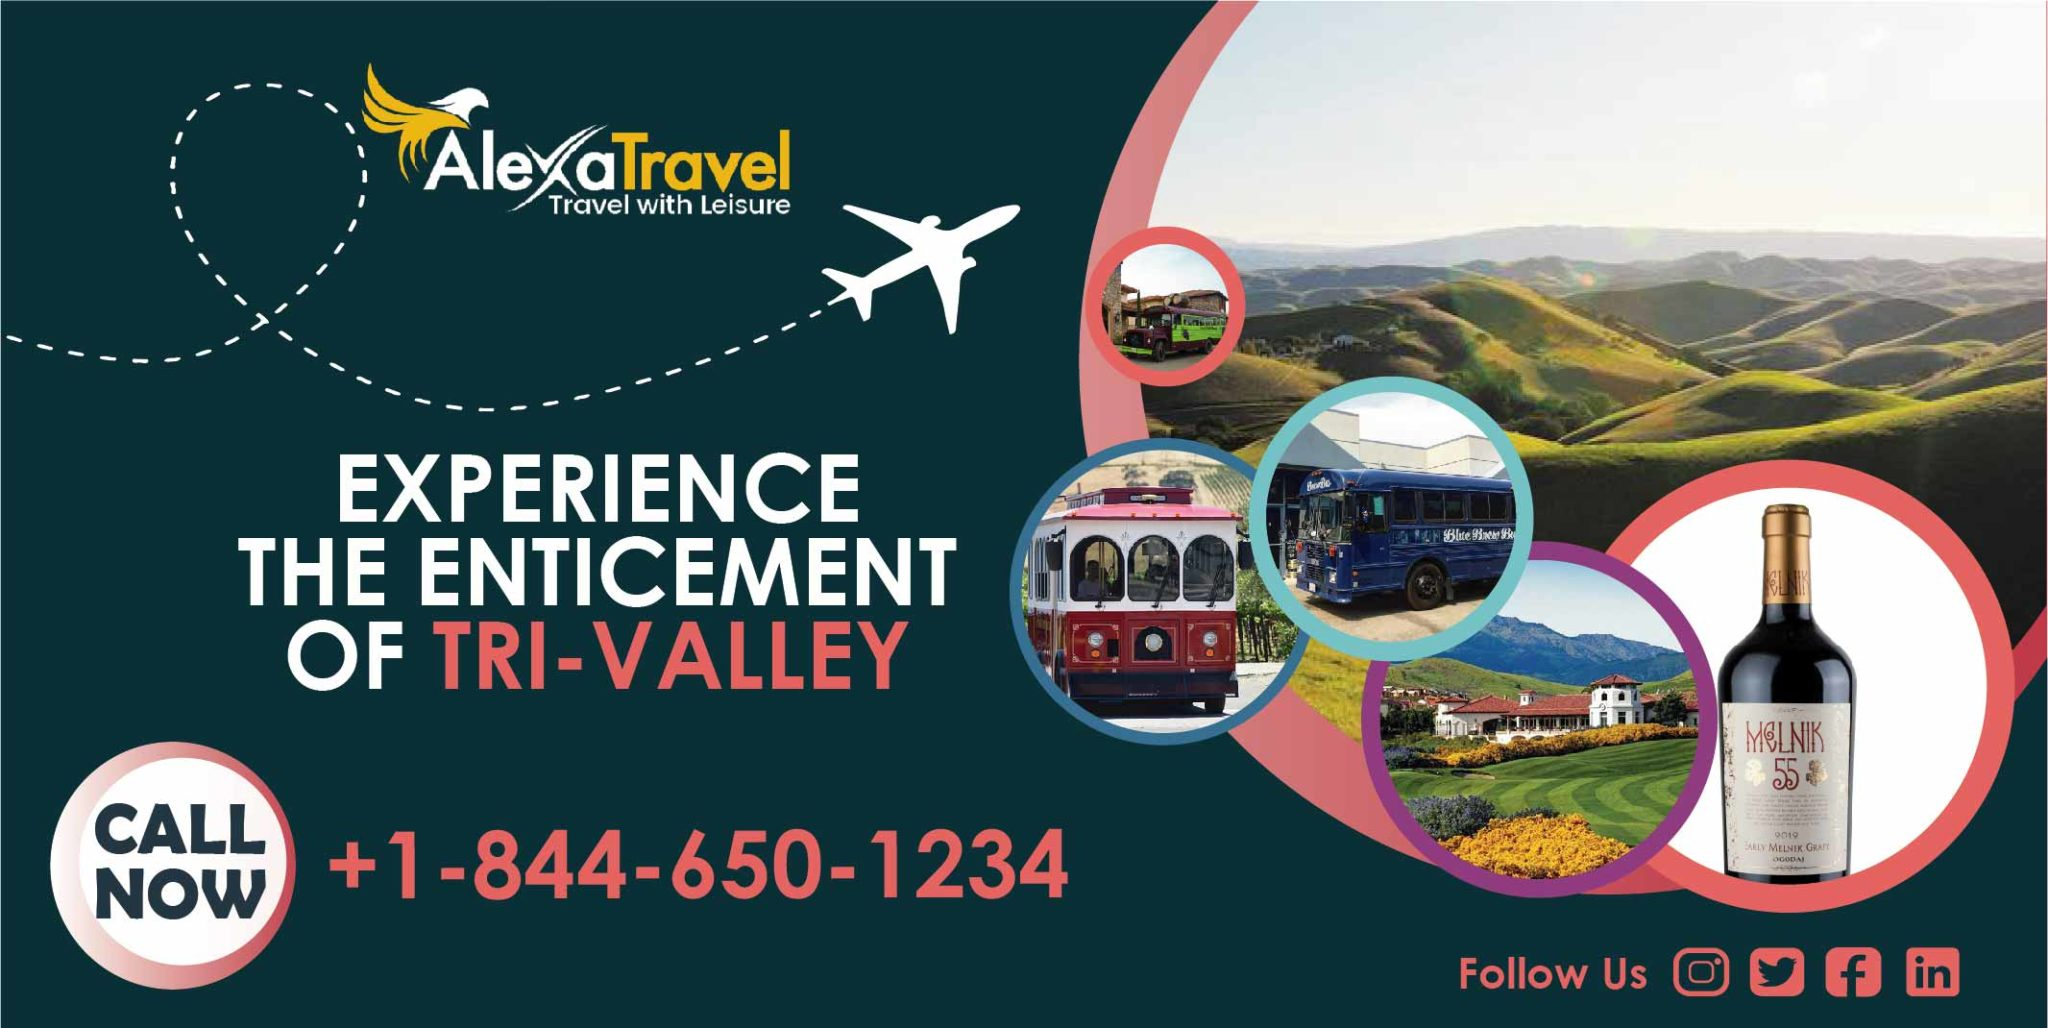 Experience the enticement of Tri-Valley